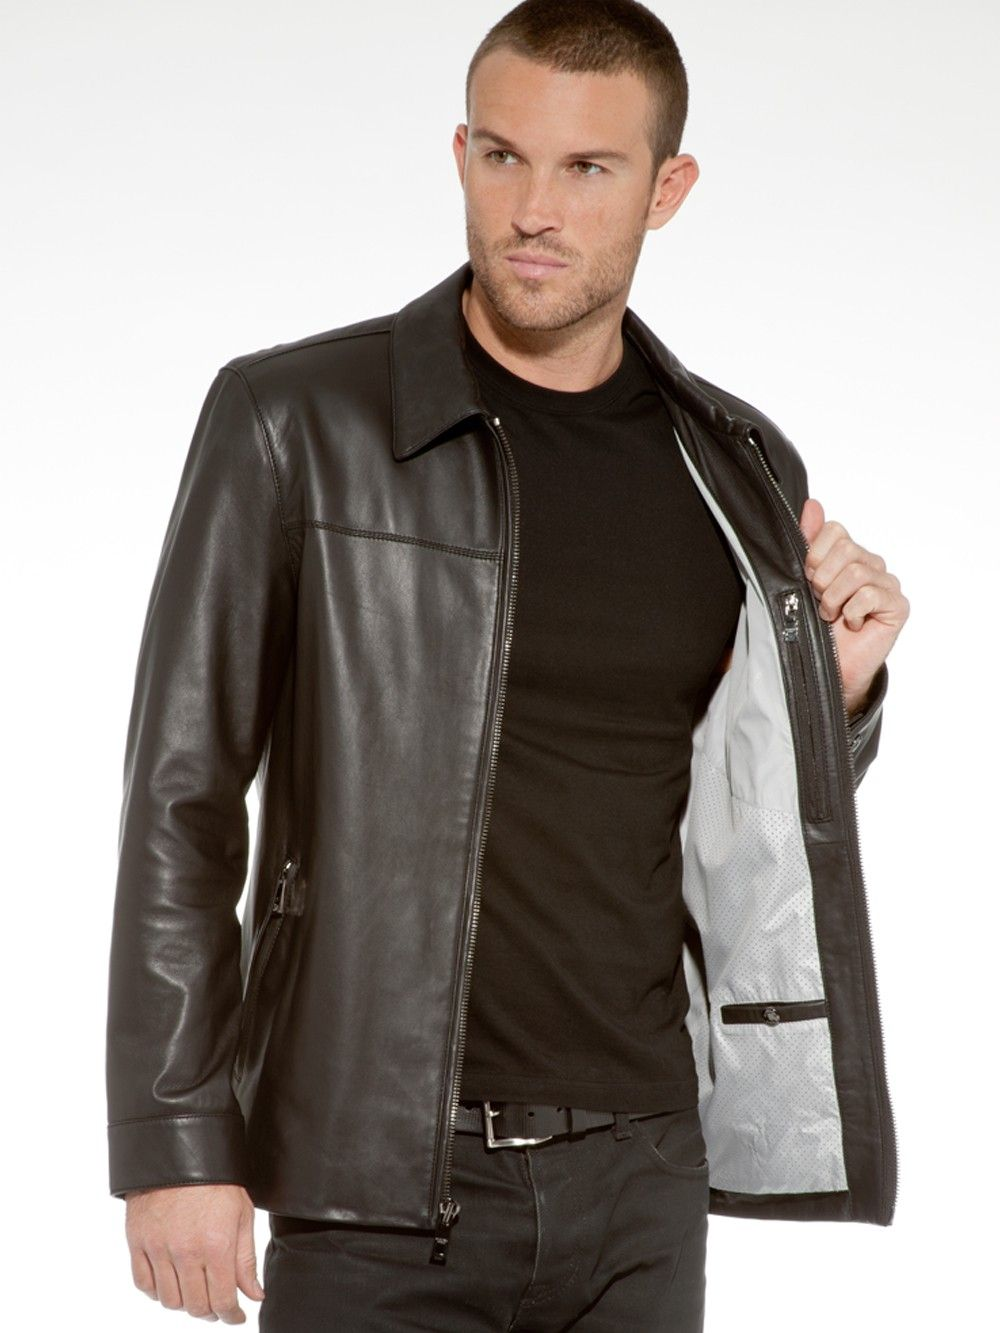 0e5774632d76 Westside Jacket - MENS Andrew Marc, Leather Jackets, Cool Style, Men's Style ,